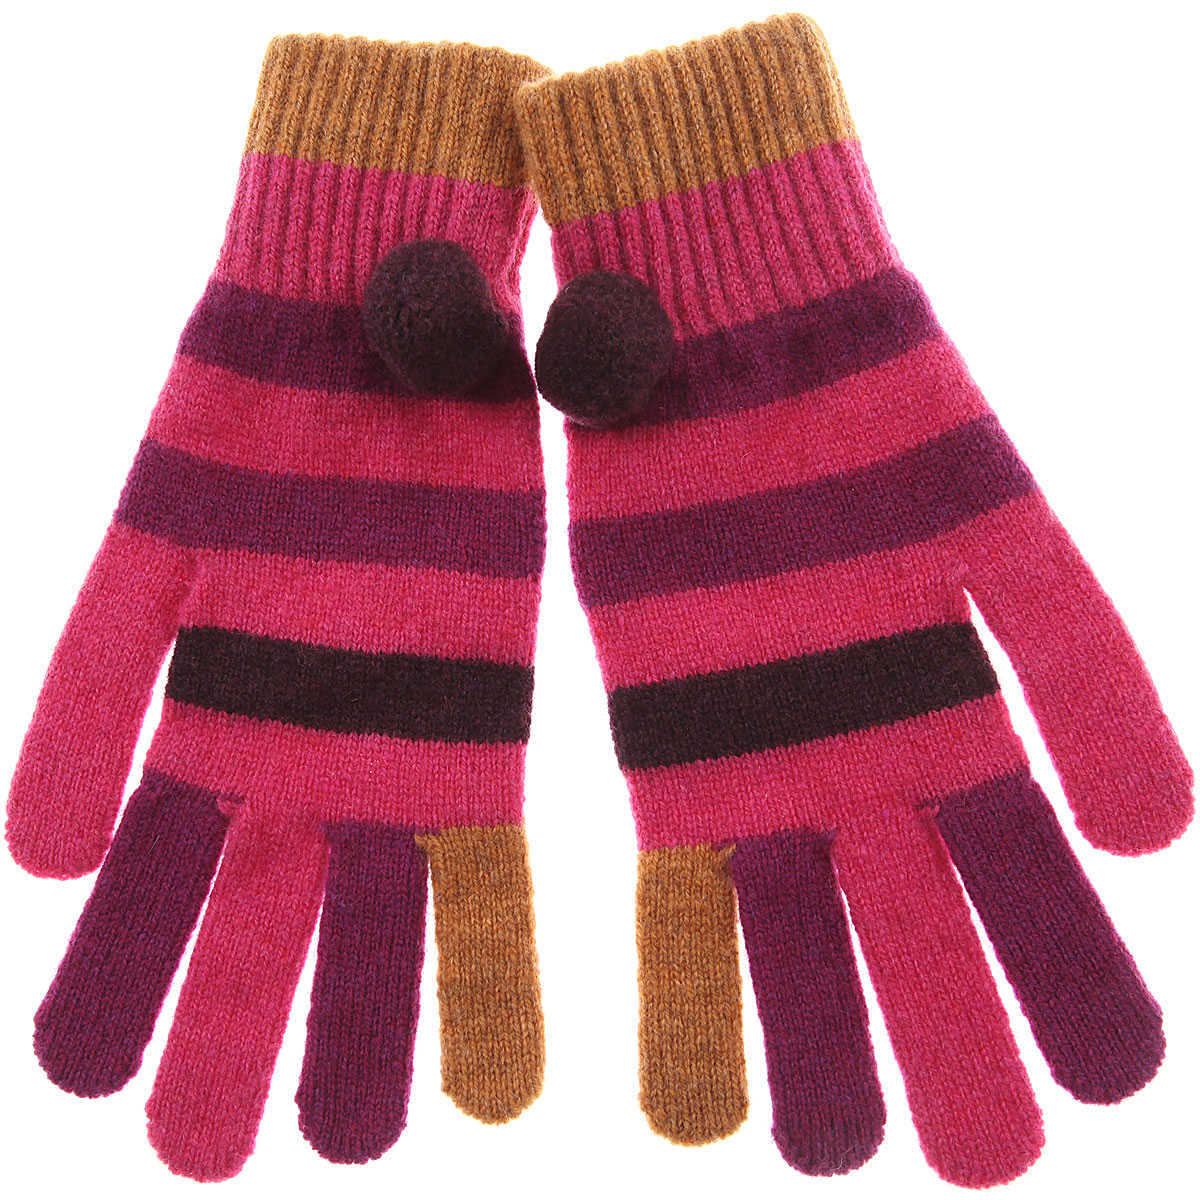 Paul Smith Gloves for Women On Sale Pink - GOOFASH